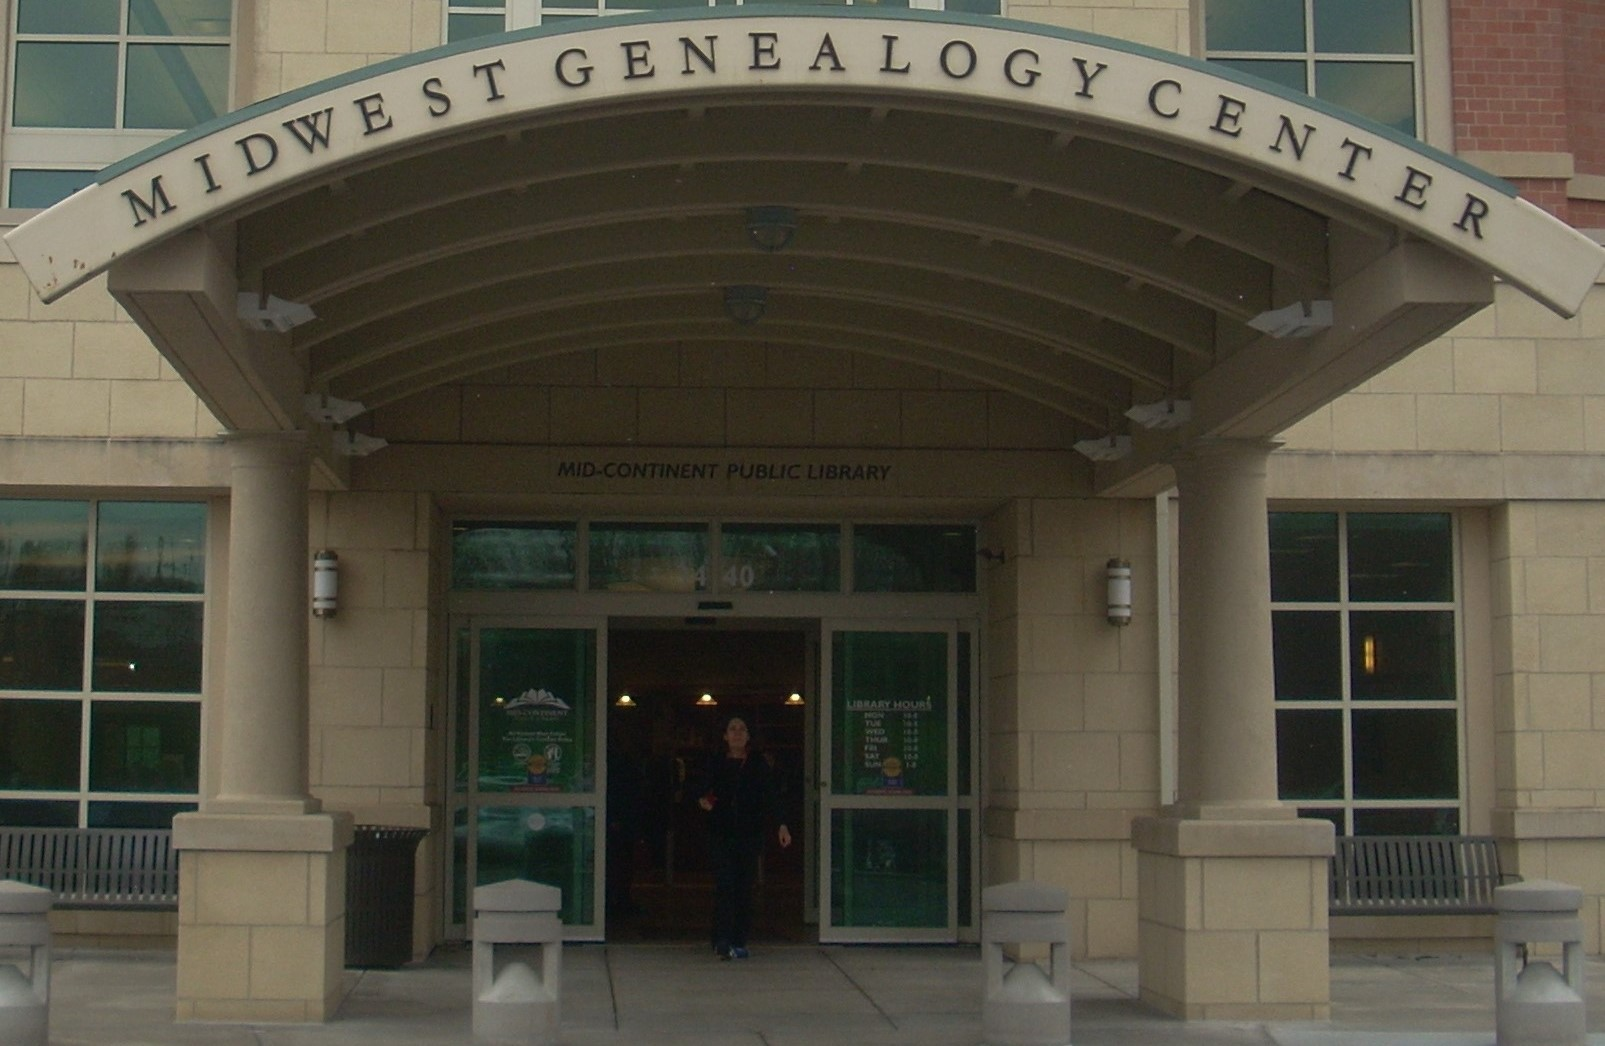 Midwest Genealogy Center